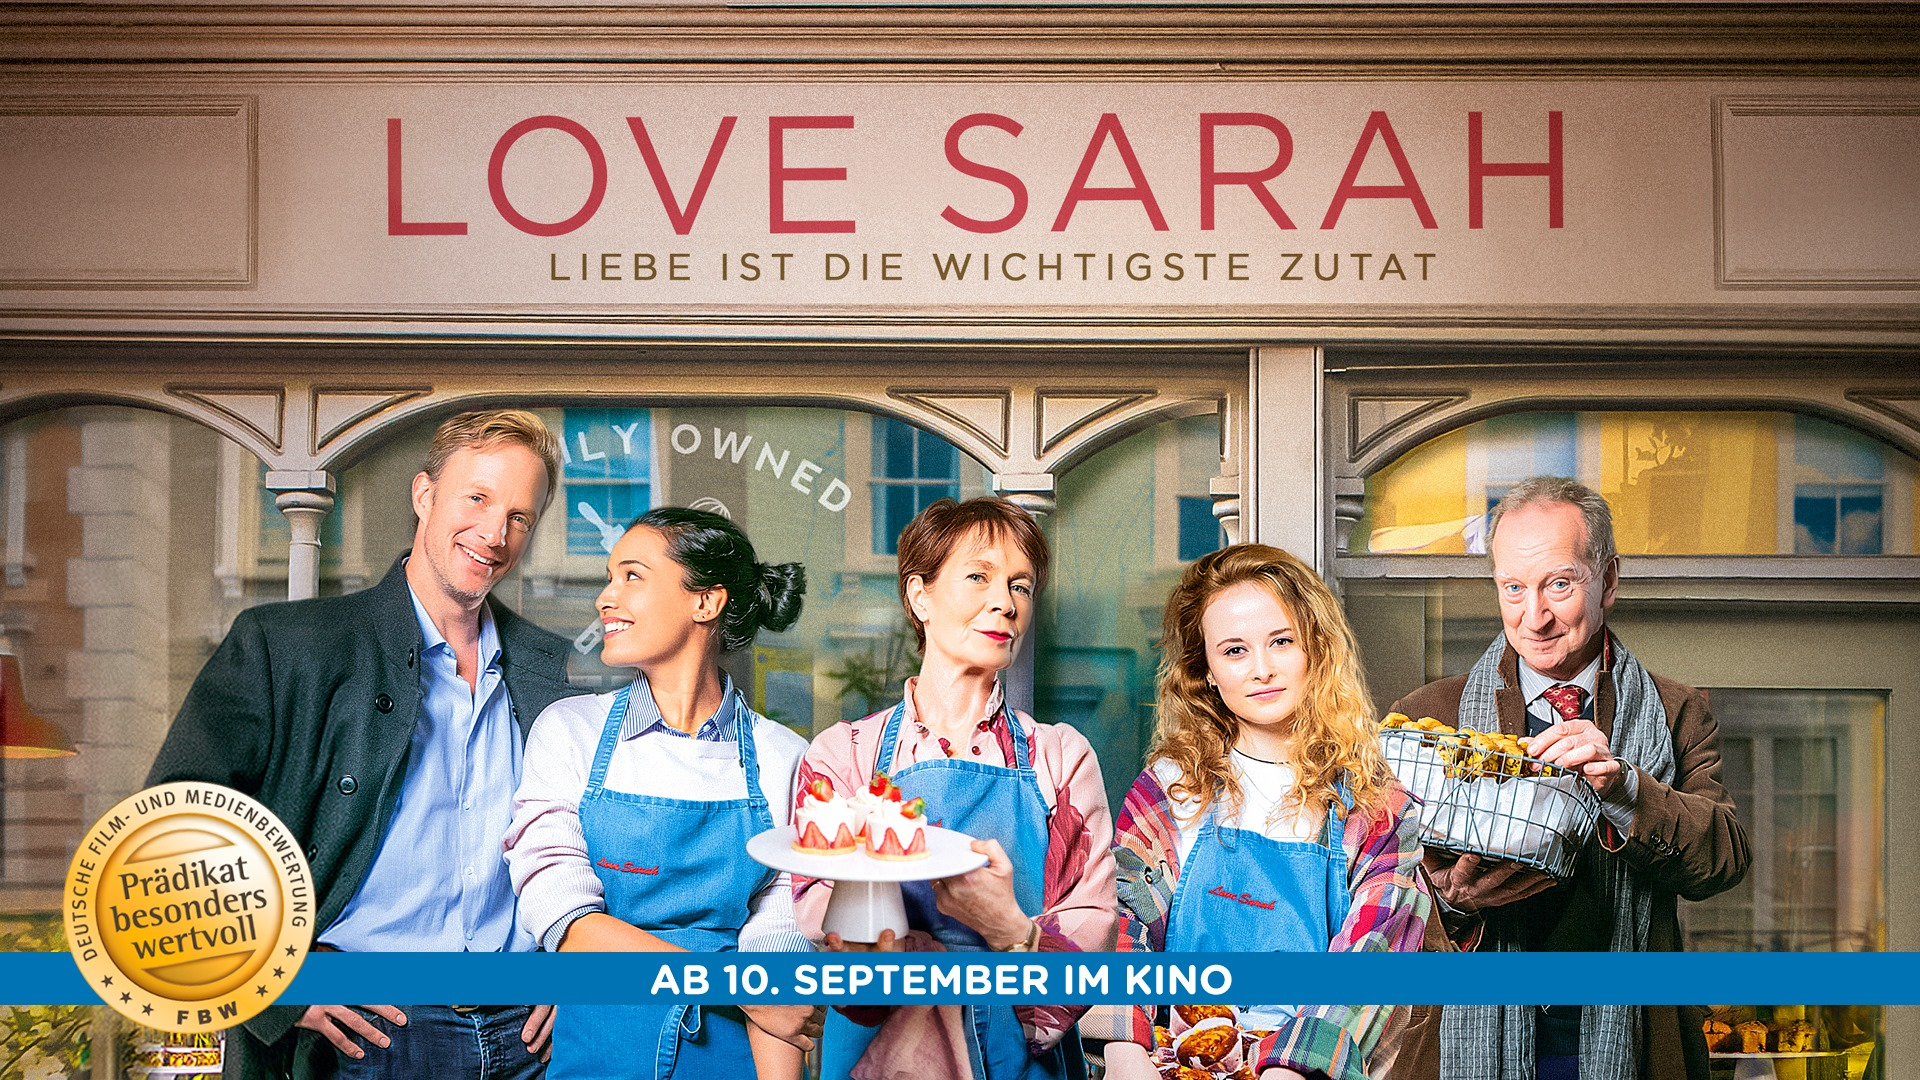 Love Sarah - der Film